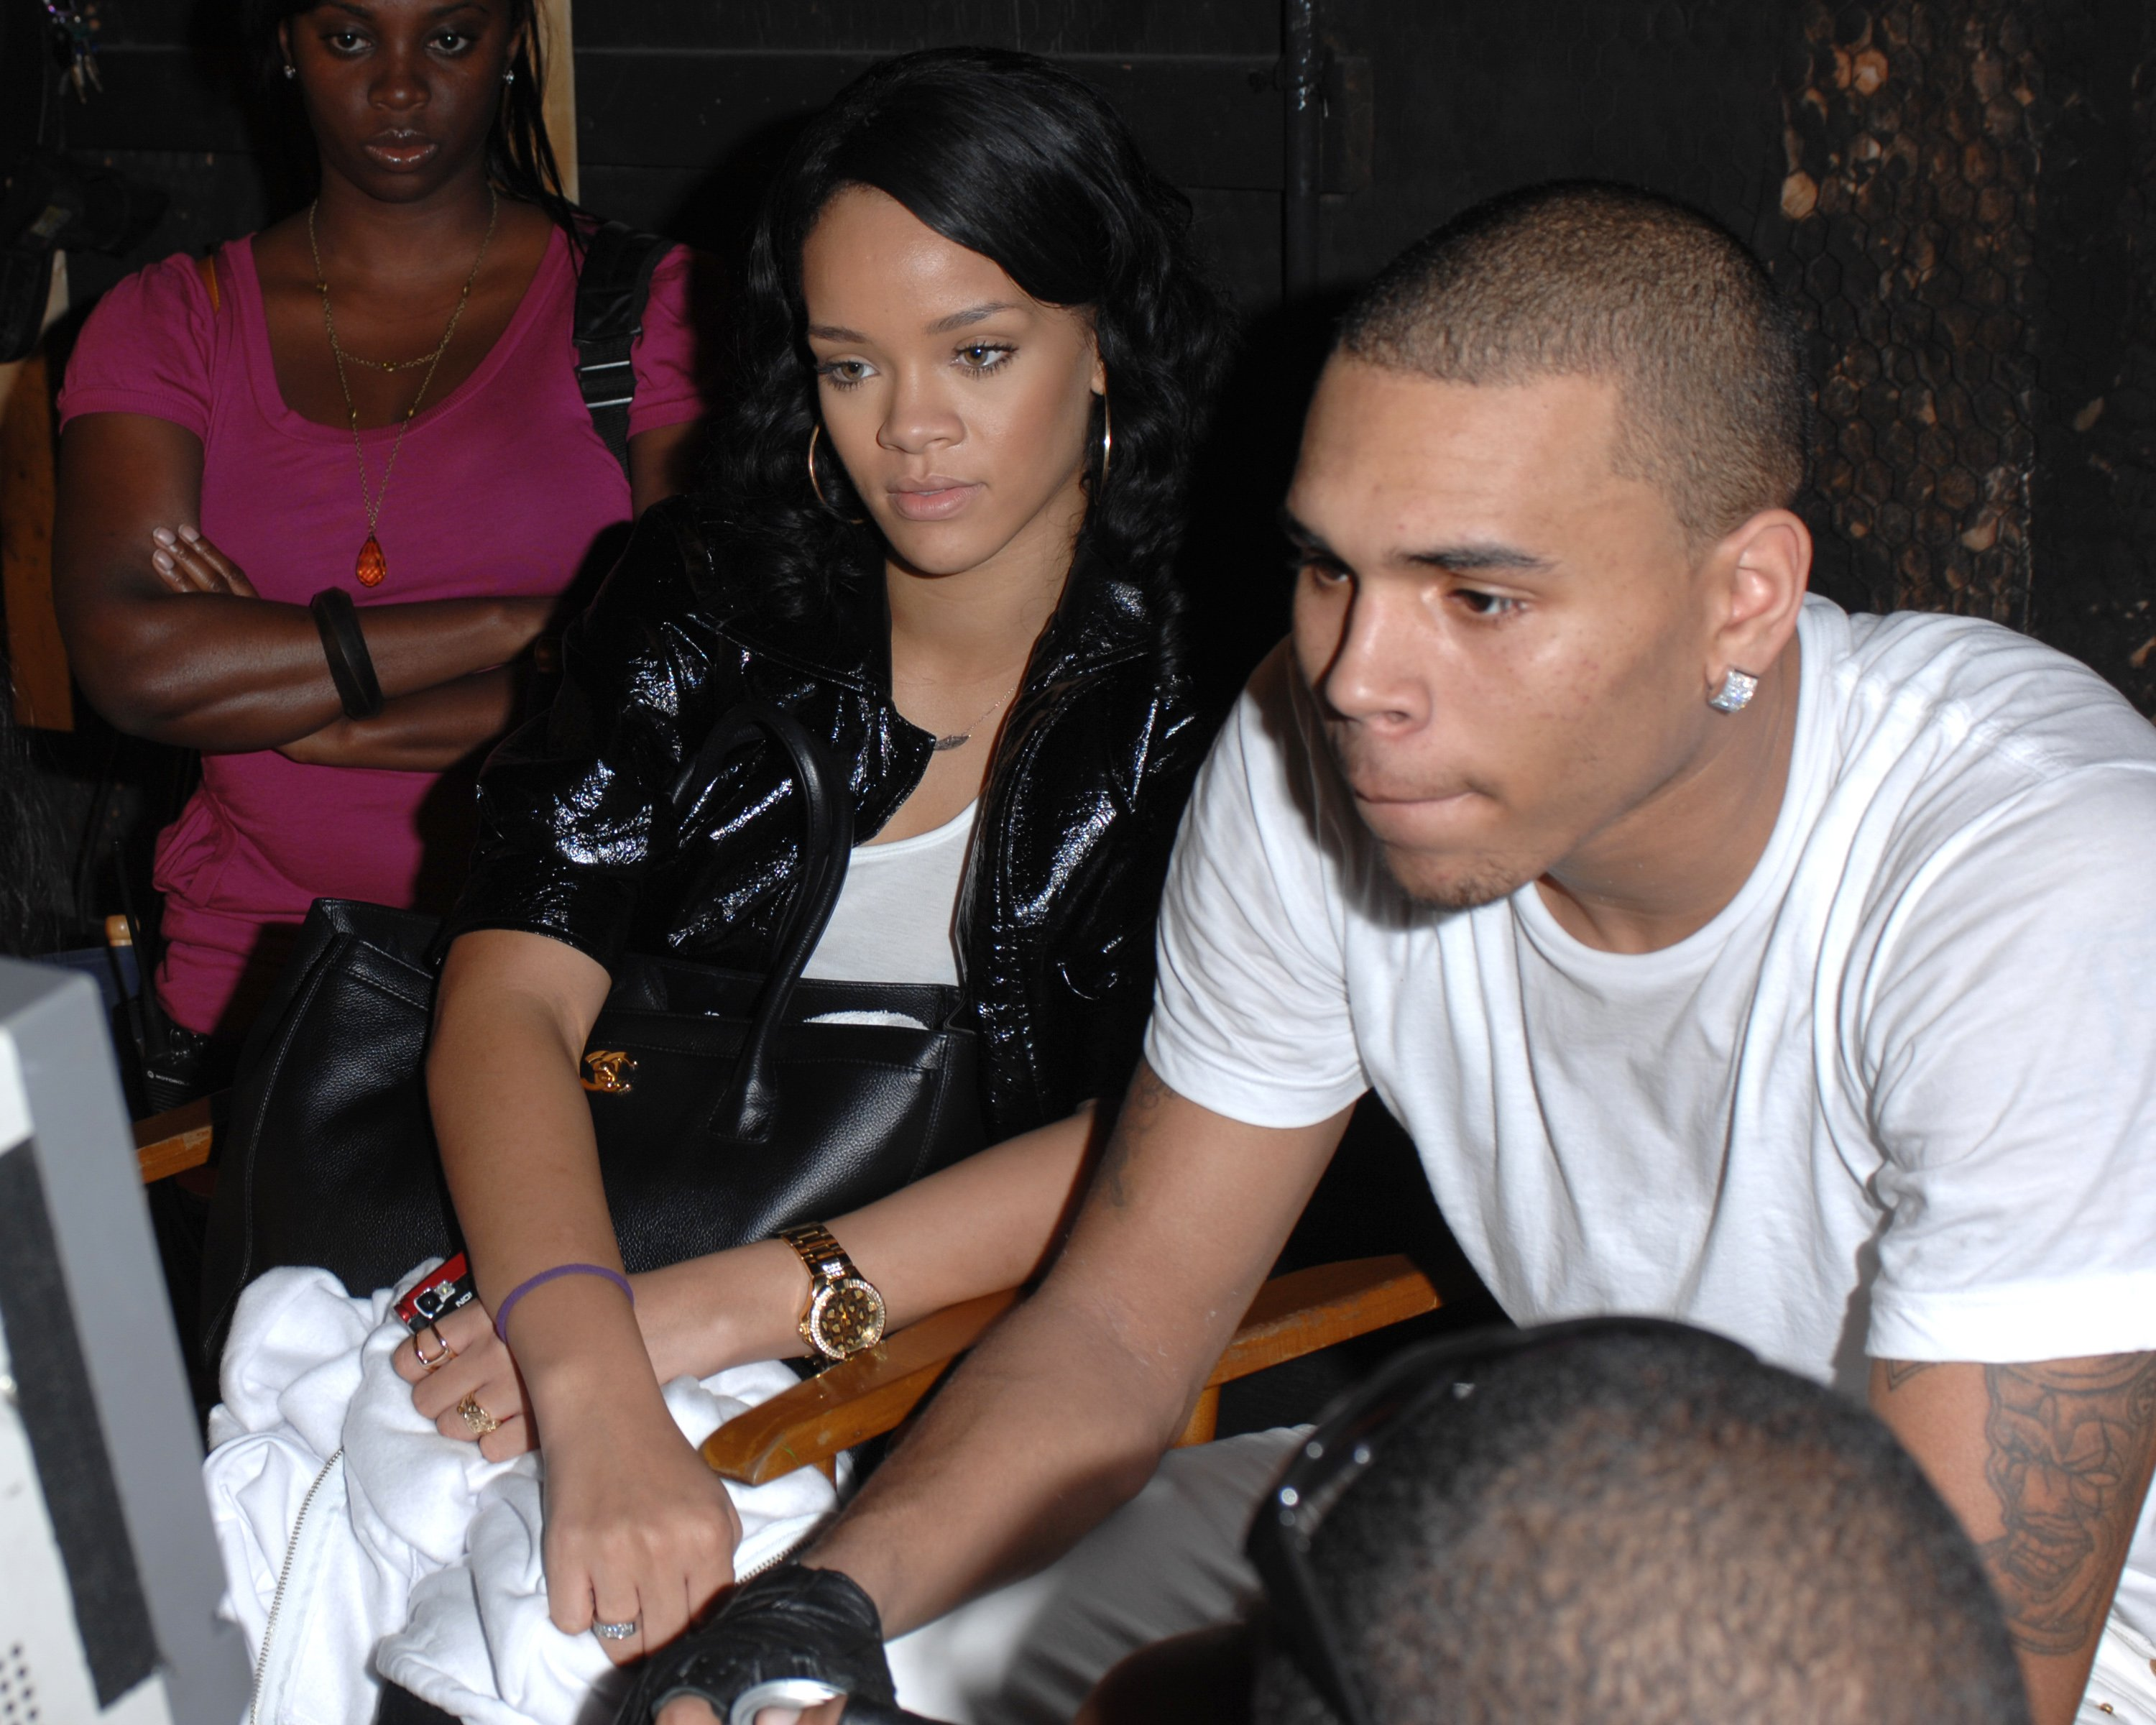 Rihanna and then-boyfriend Chris Brown on the set of a video shoot in December 2007 in Miami. | Photo: Getty Images